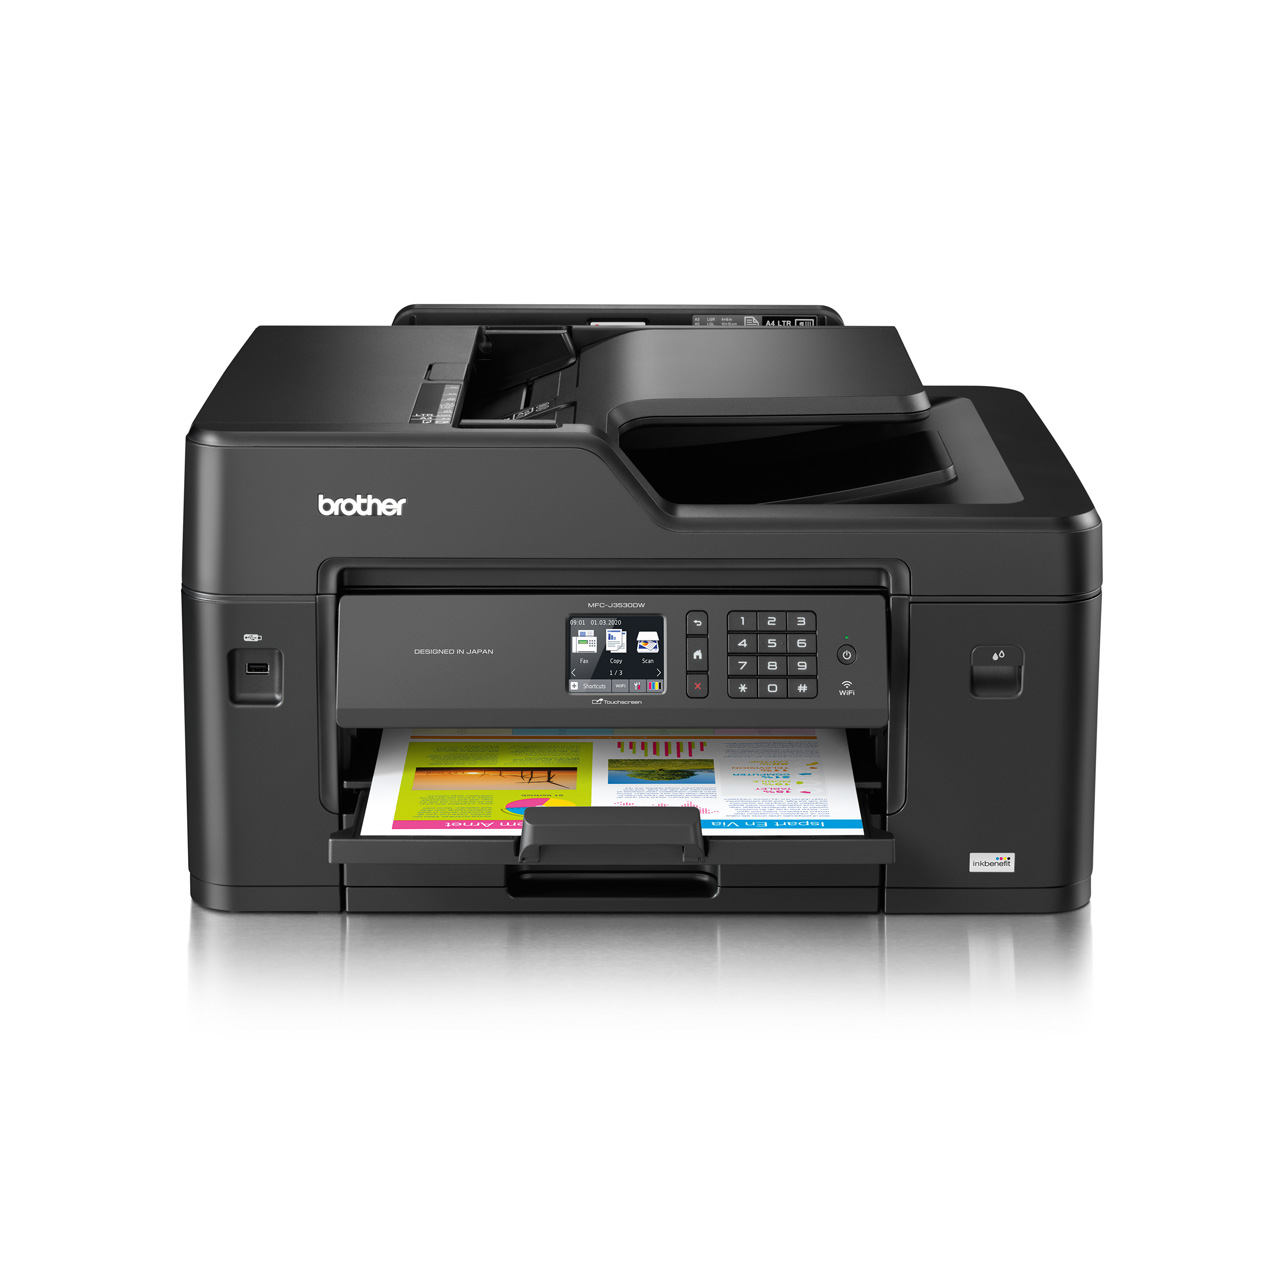 Printers multi functions for home brother malaysia mfc j3530dw front reheart Gallery